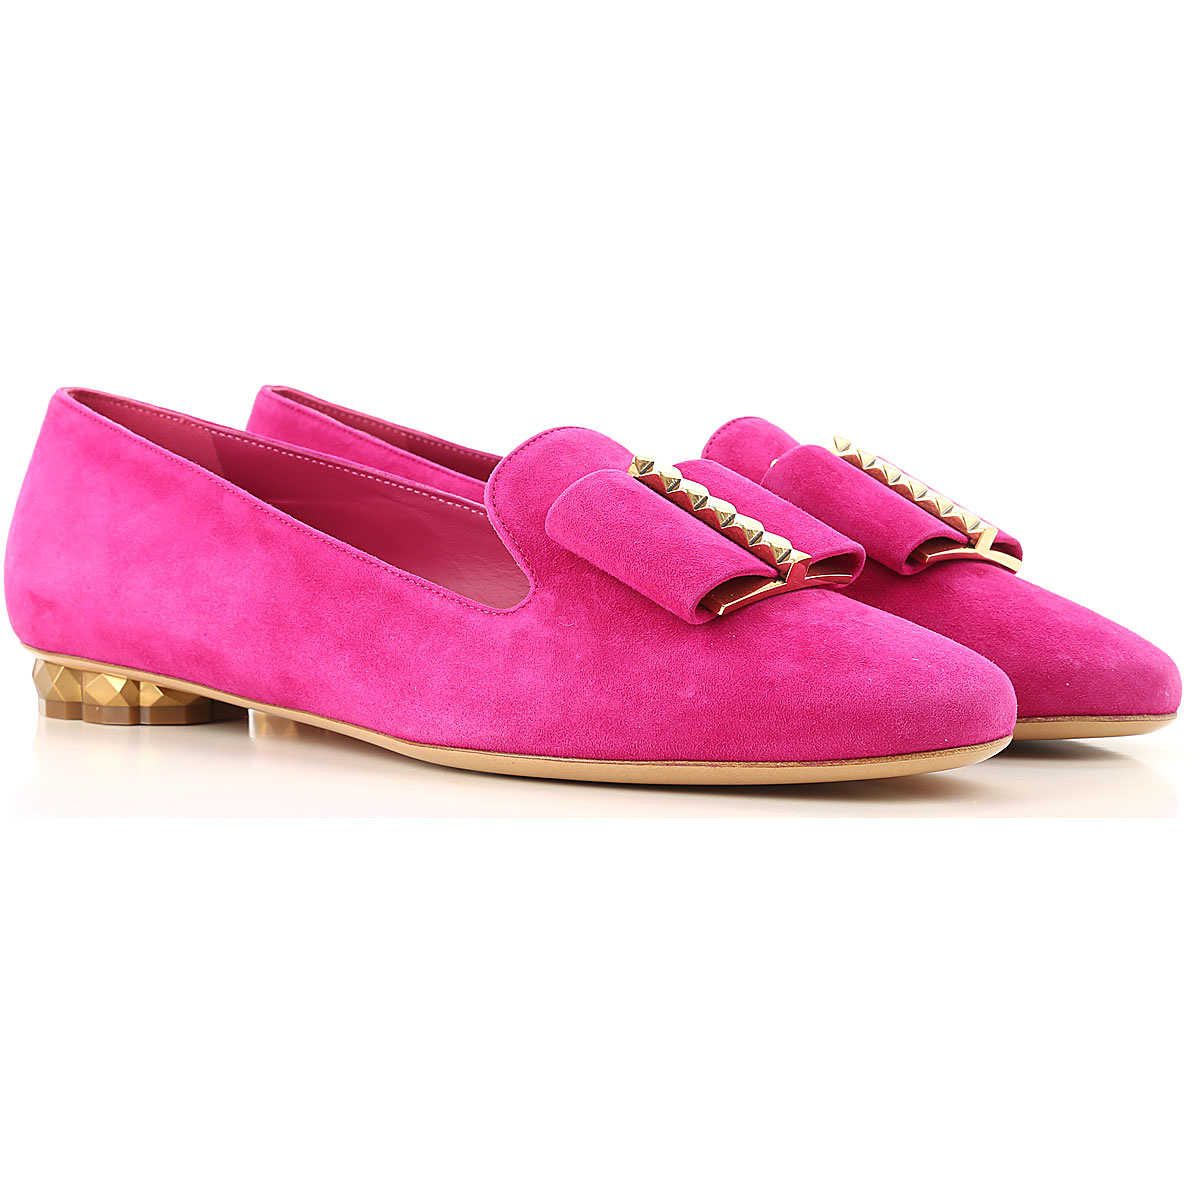 Salvatore Ferragamo Loafers for Women Cerise Purple DK - GOOFASH - Womens FLAT SHOES